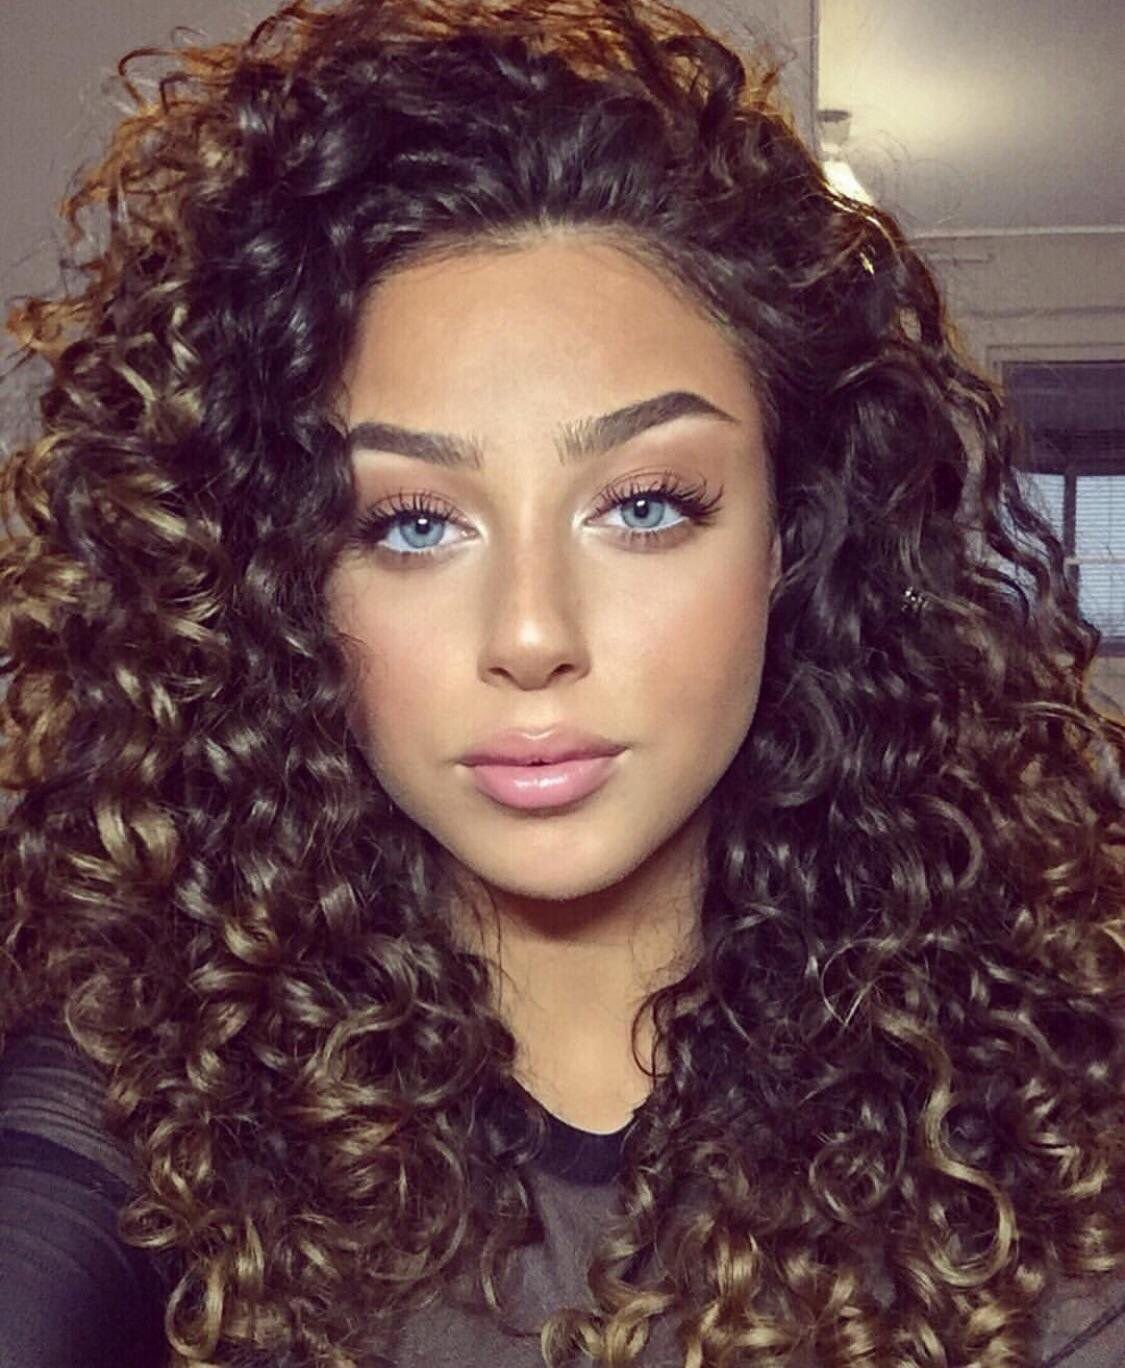 45 Charming Bride S Wedding Hairstyles For Naturally Curly: Curly Hair Styles, Curly Hair Inspiration